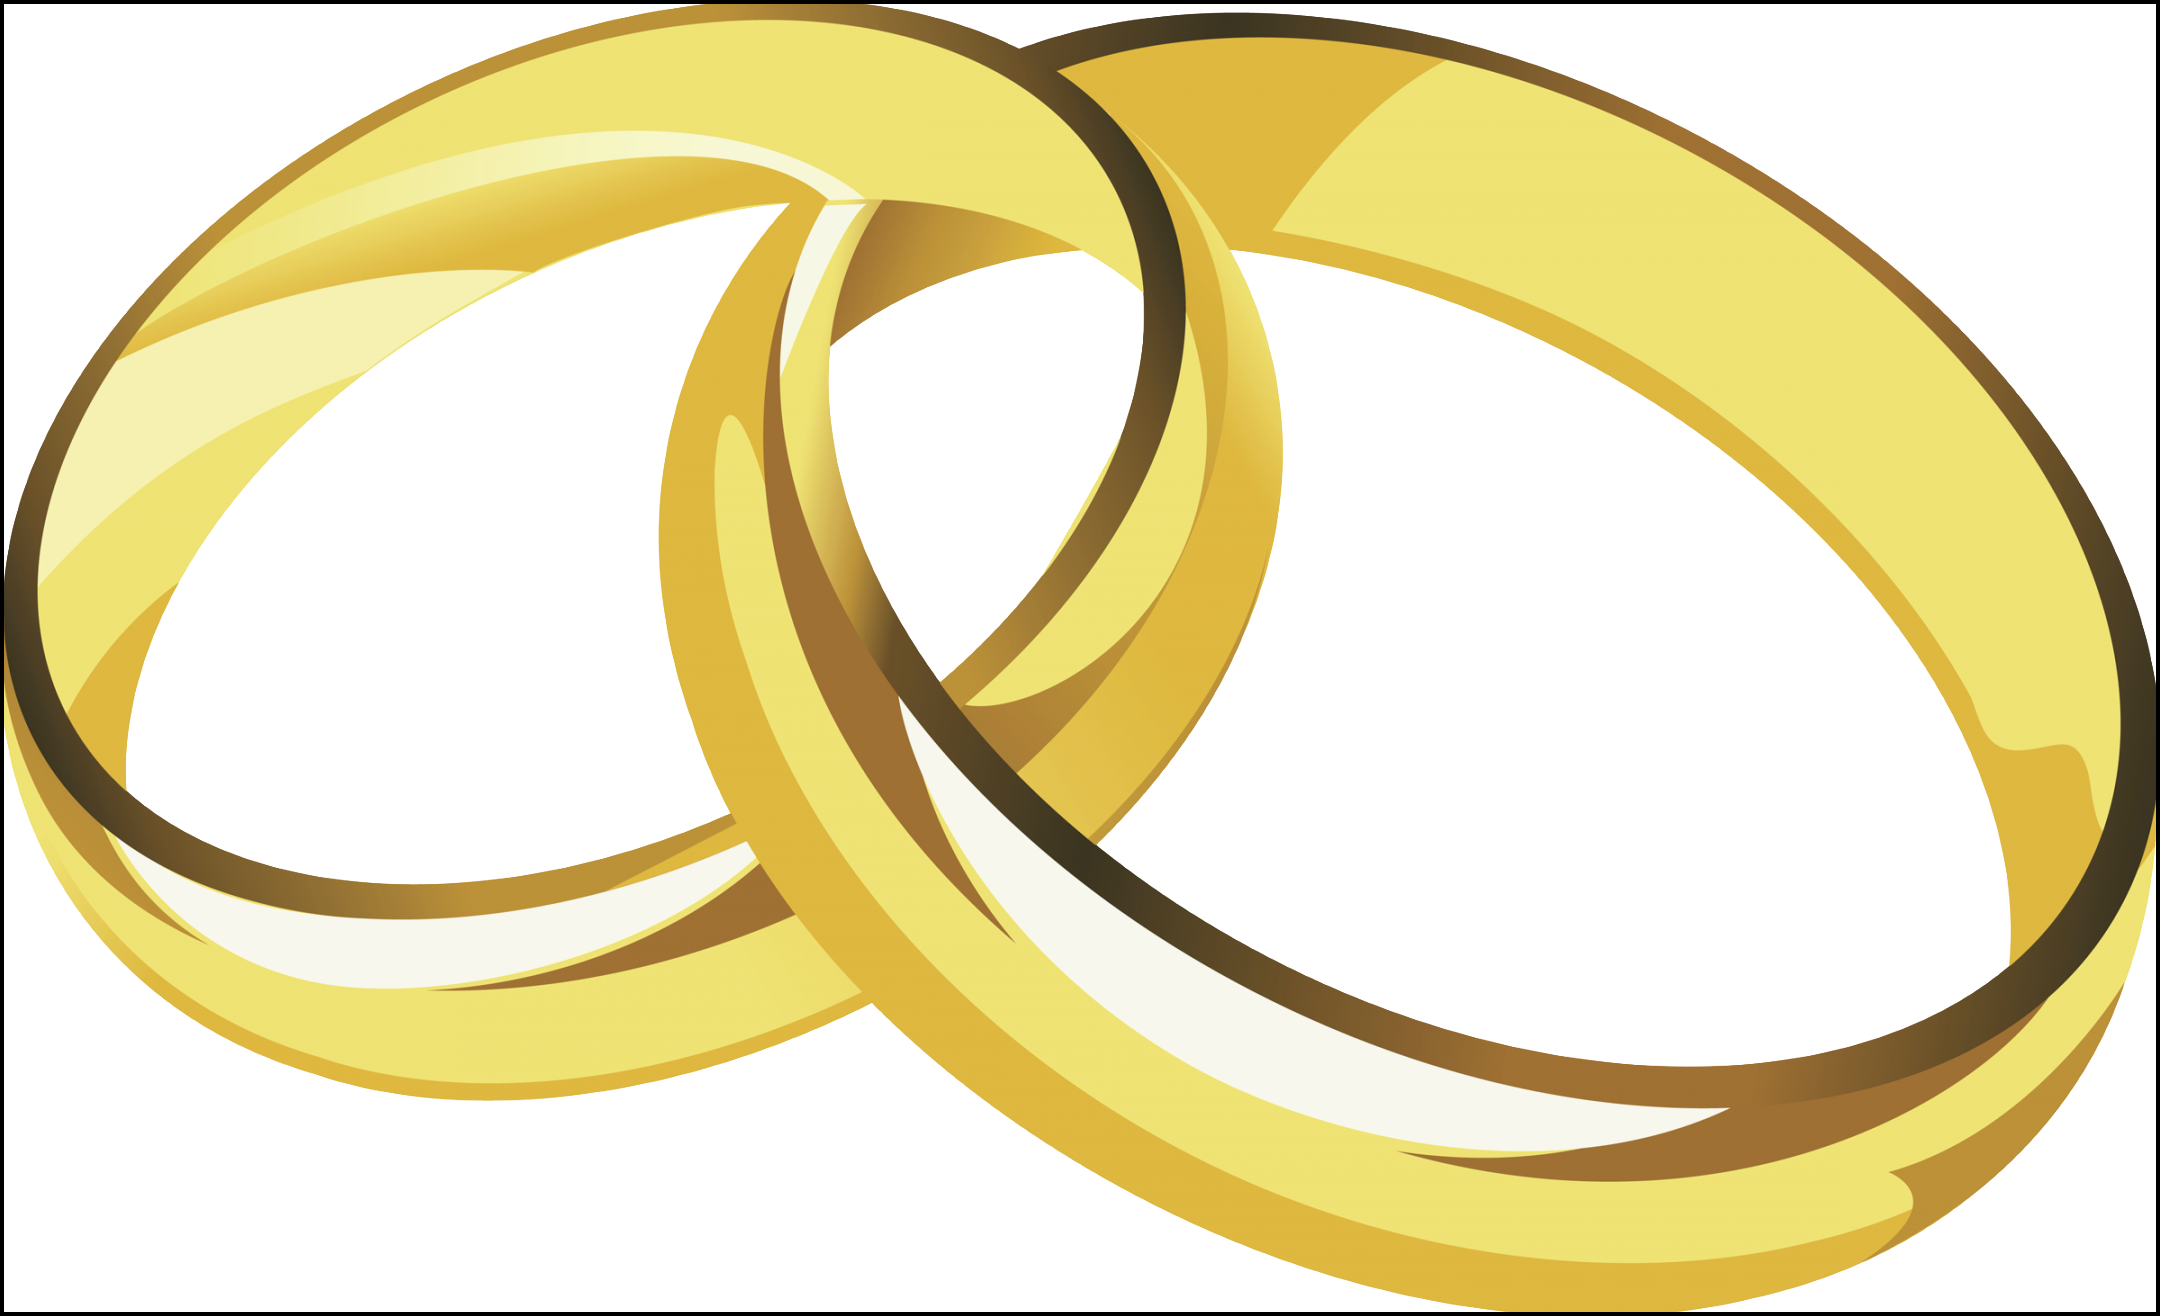 Wedding wings clipart clipart royalty free Wedding : Wedding Rings Clip Art New Dou #87159 - PNG Images ... clipart royalty free